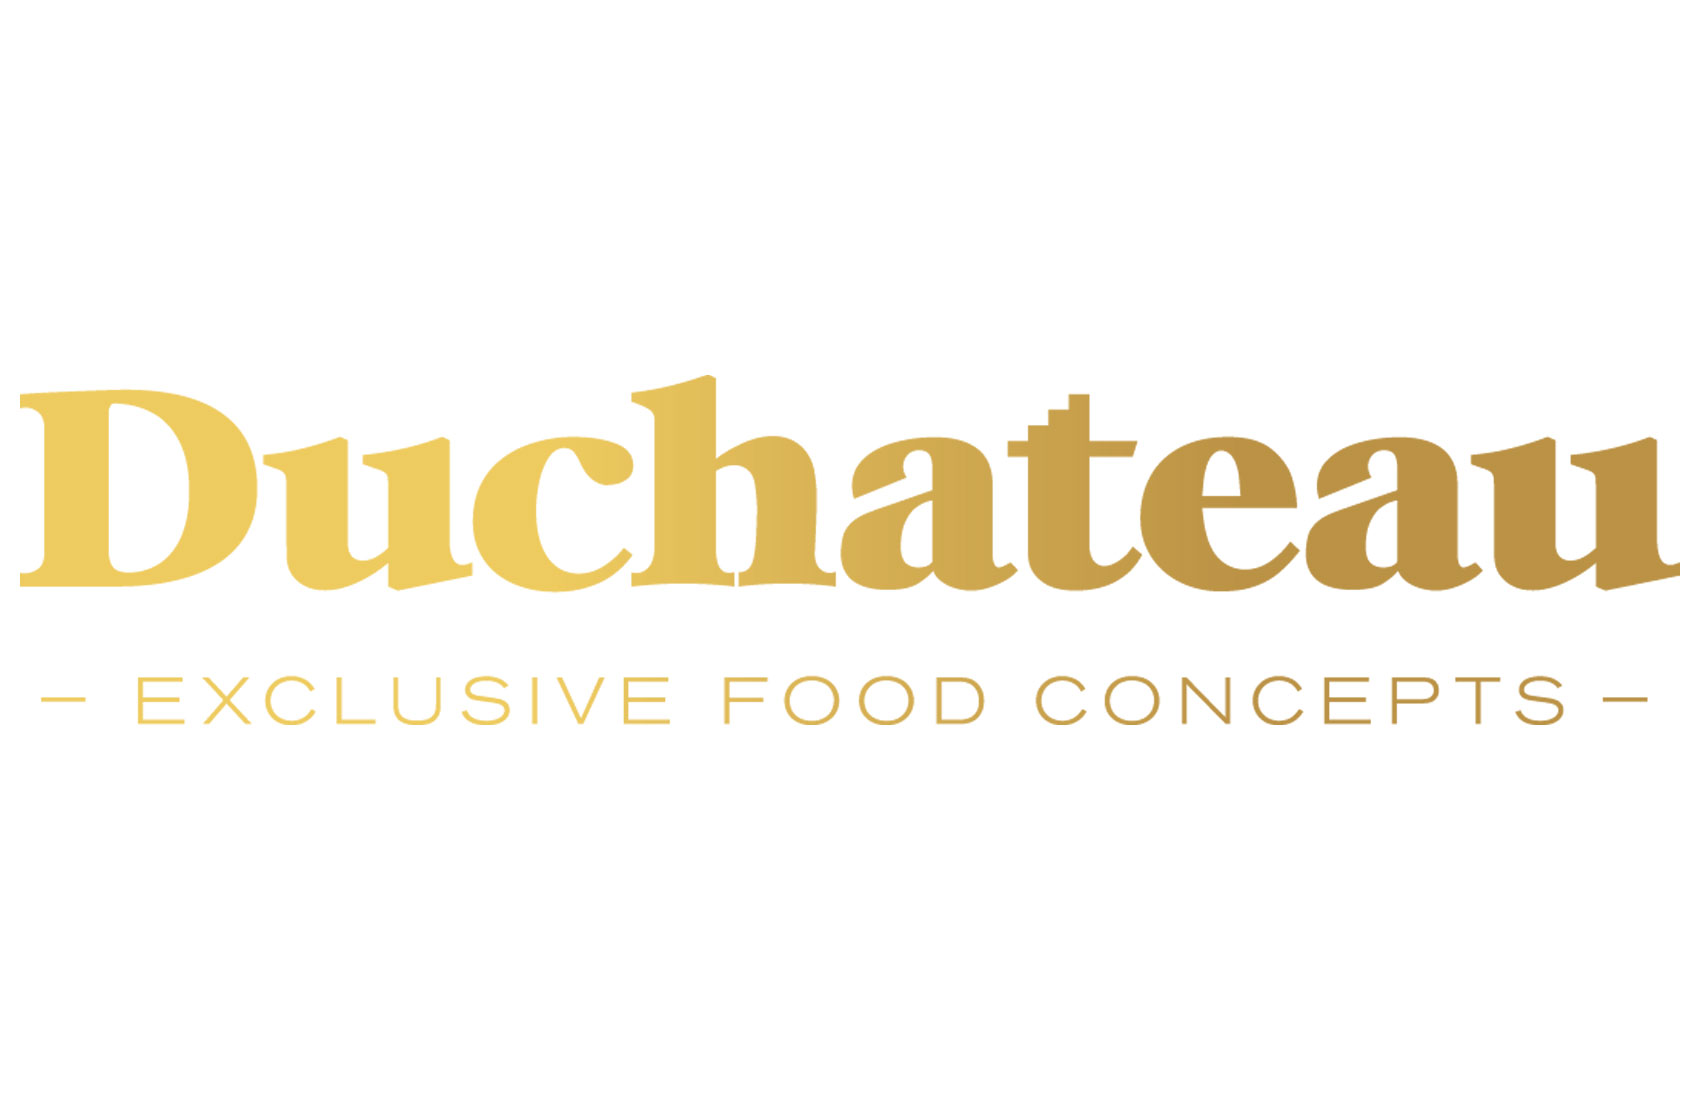 Duchateau catering